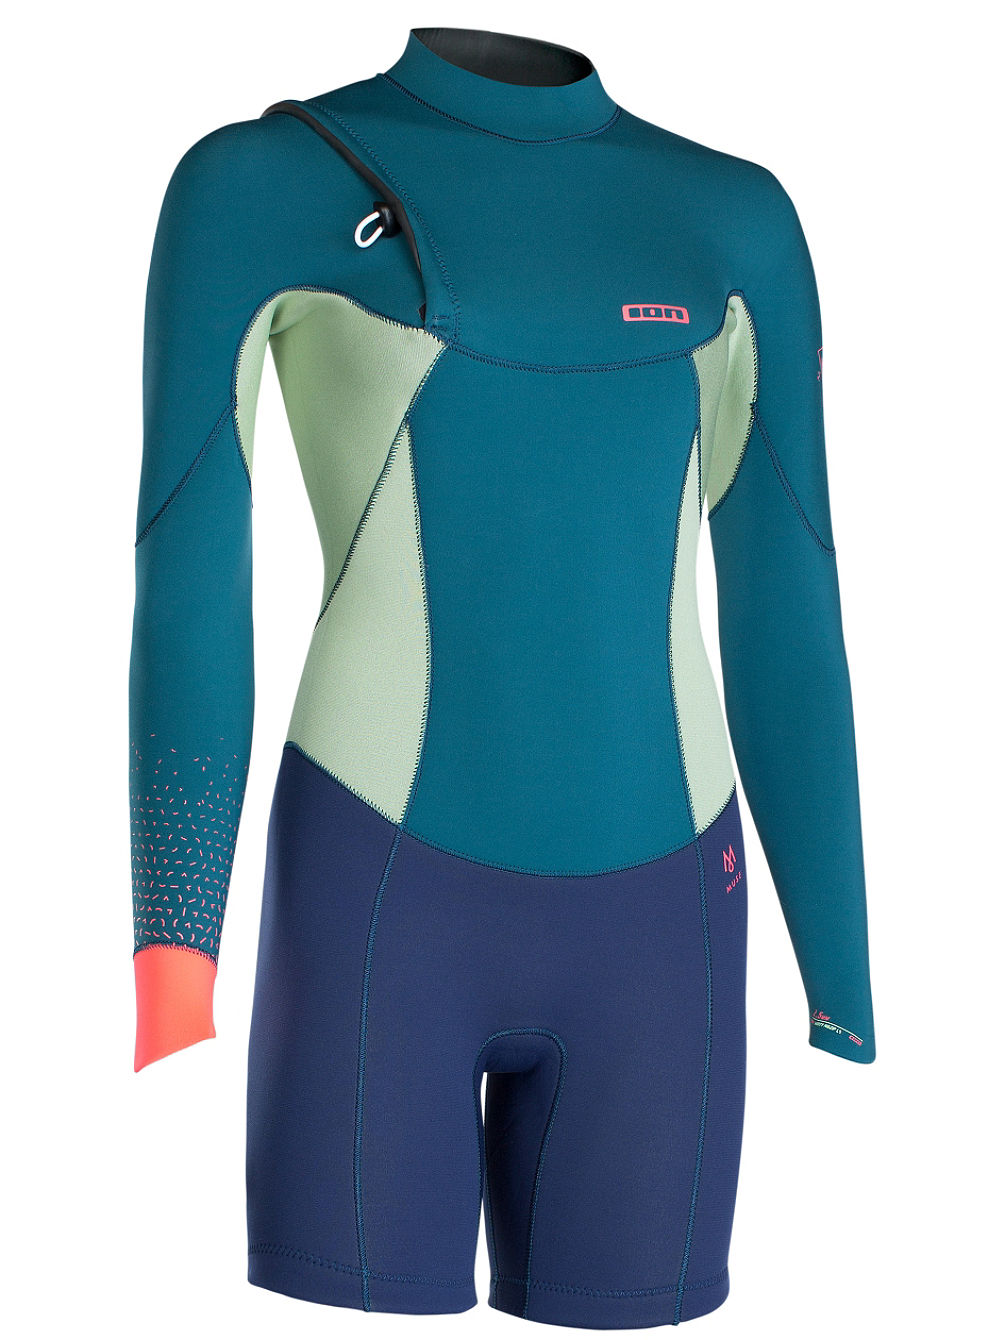 Muse Shorty (Zipless) LS 2.5 Wetsuit